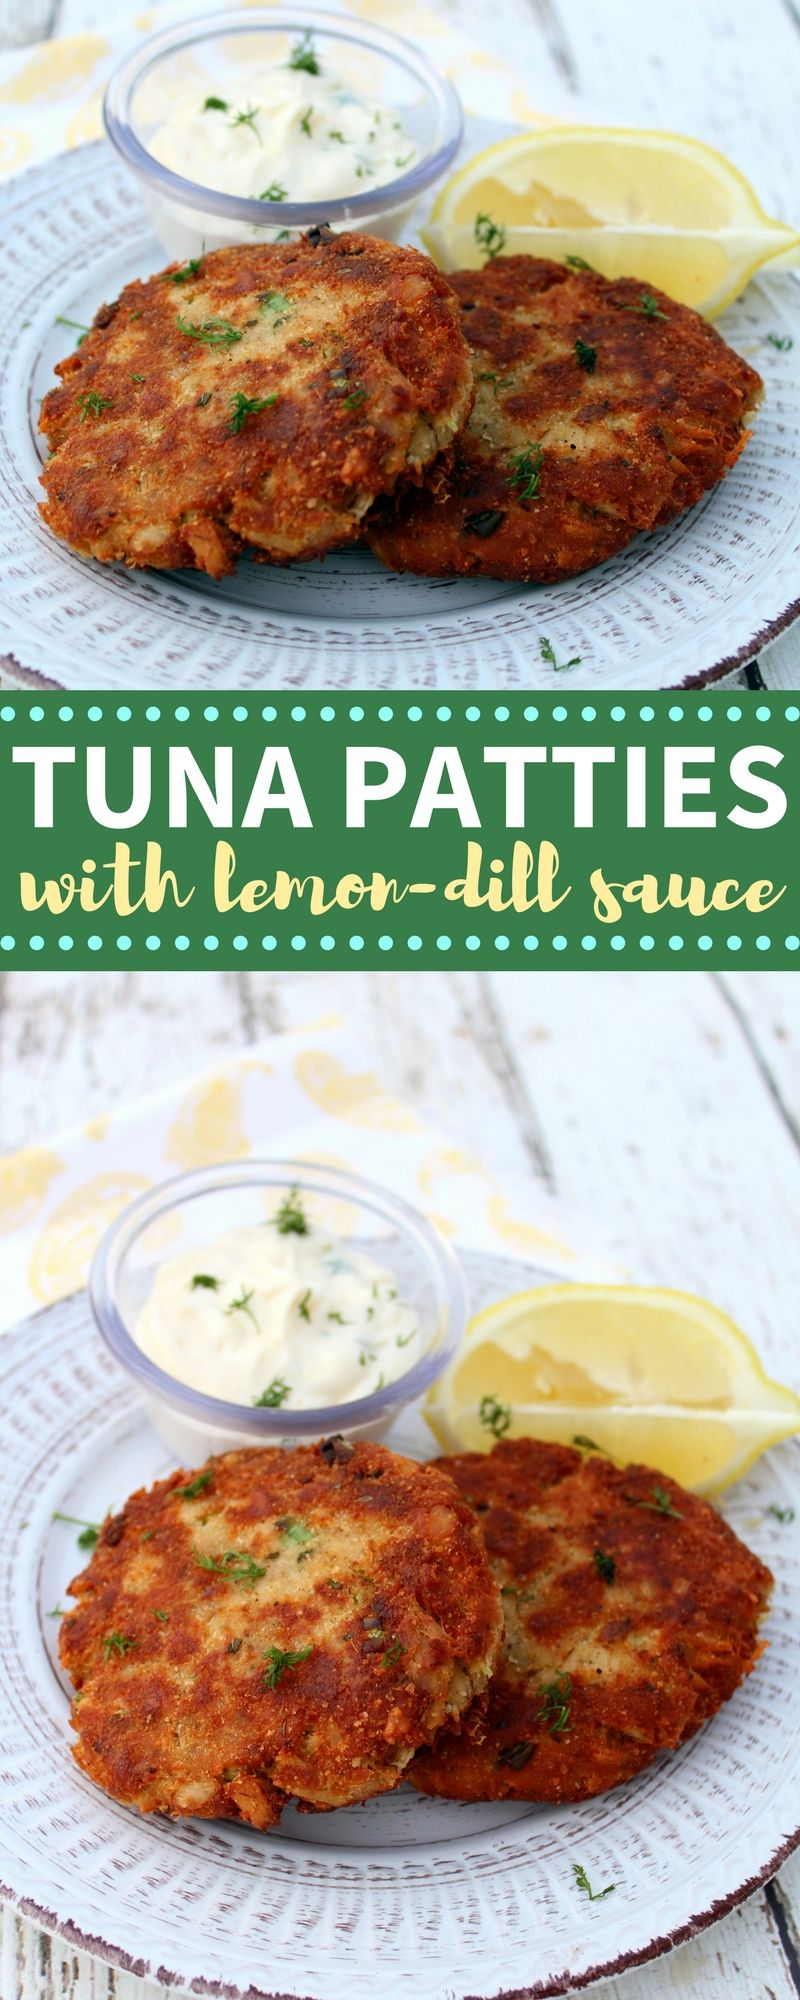 easy 4 step homemade tuna patties with lemon-dill sauce are a great weeknight meal!